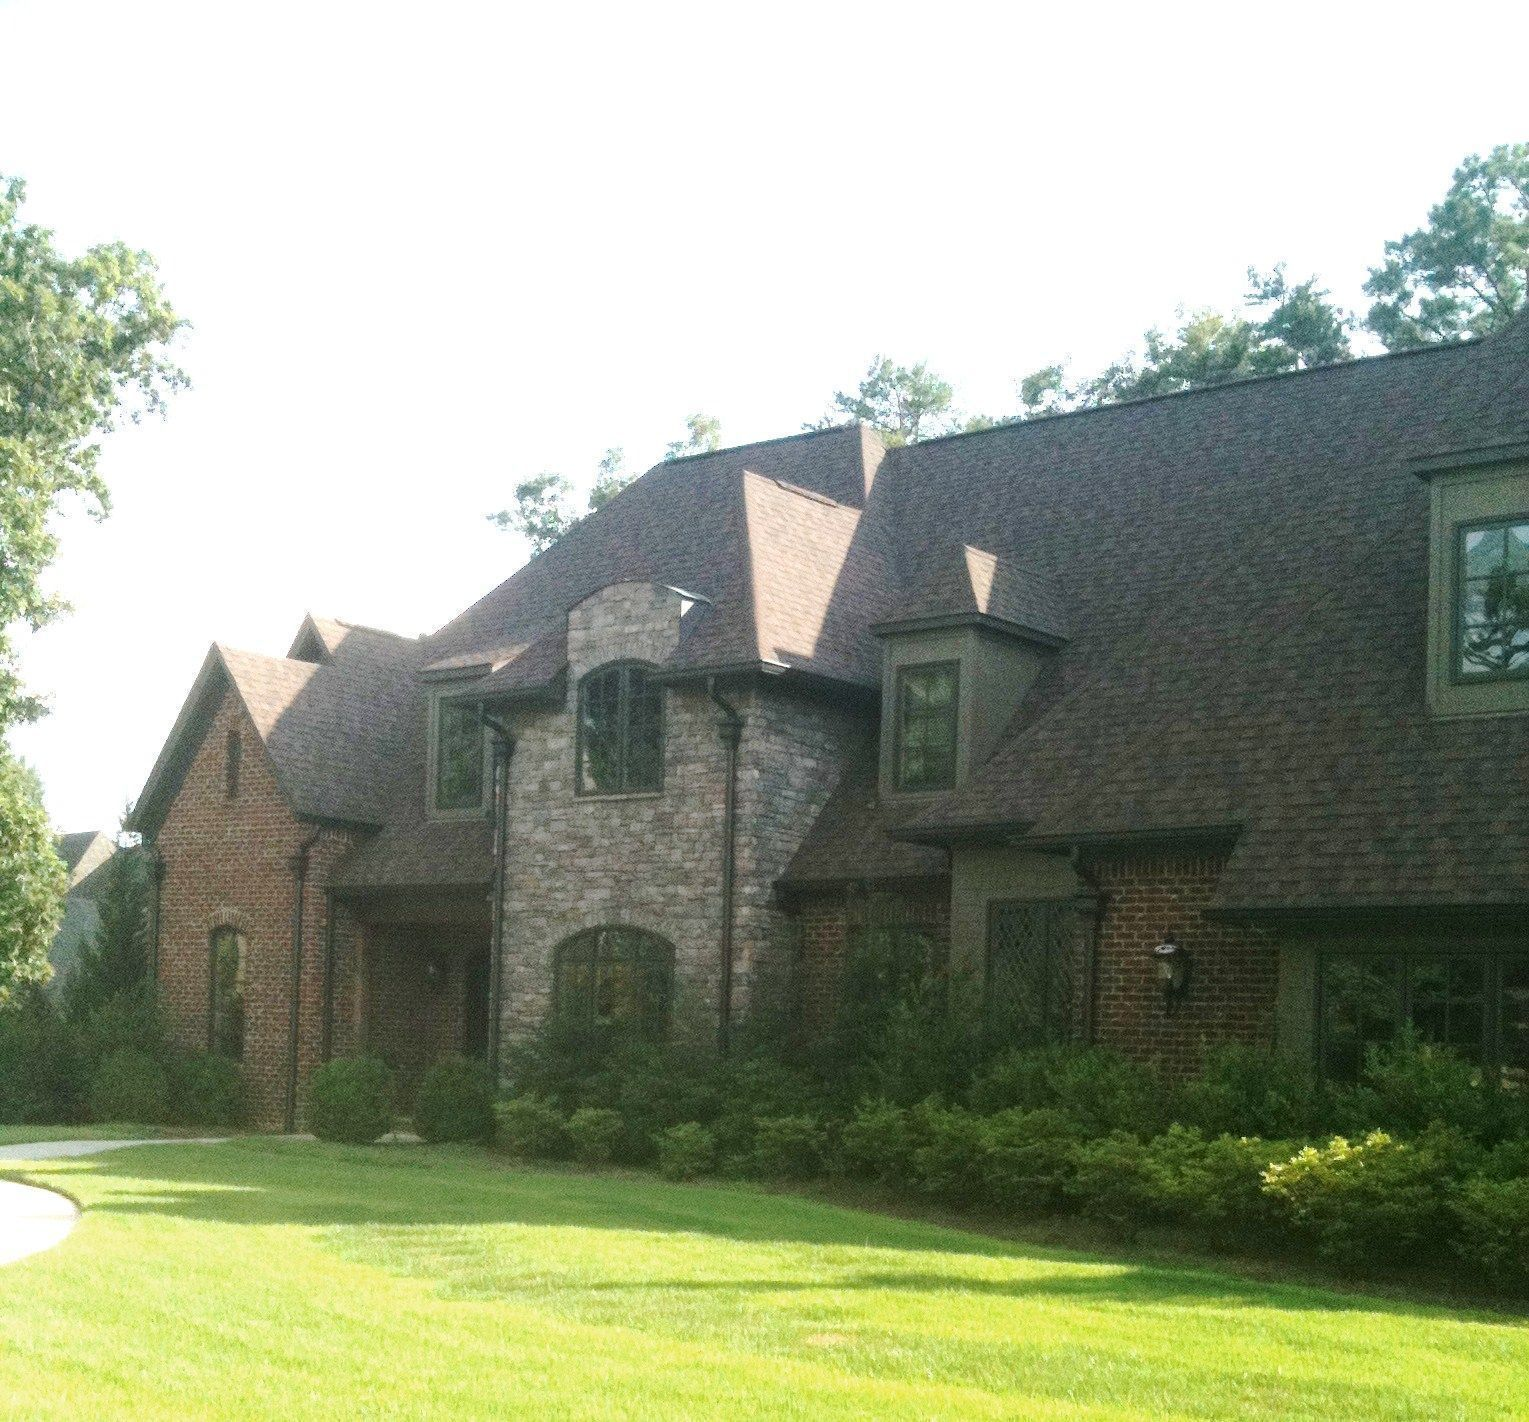 Riverchase Home for sale Hoover AL image